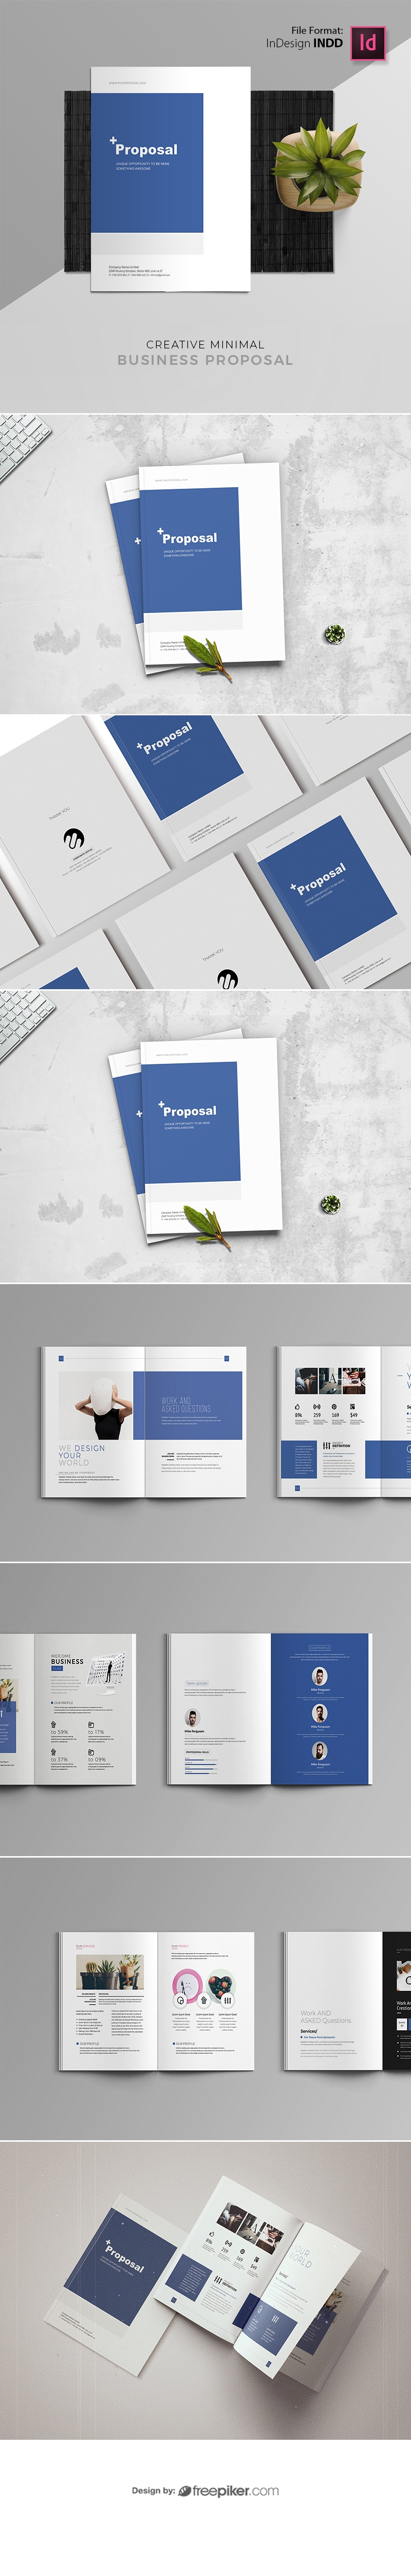 Minimal Creative Proposal Template With Blue